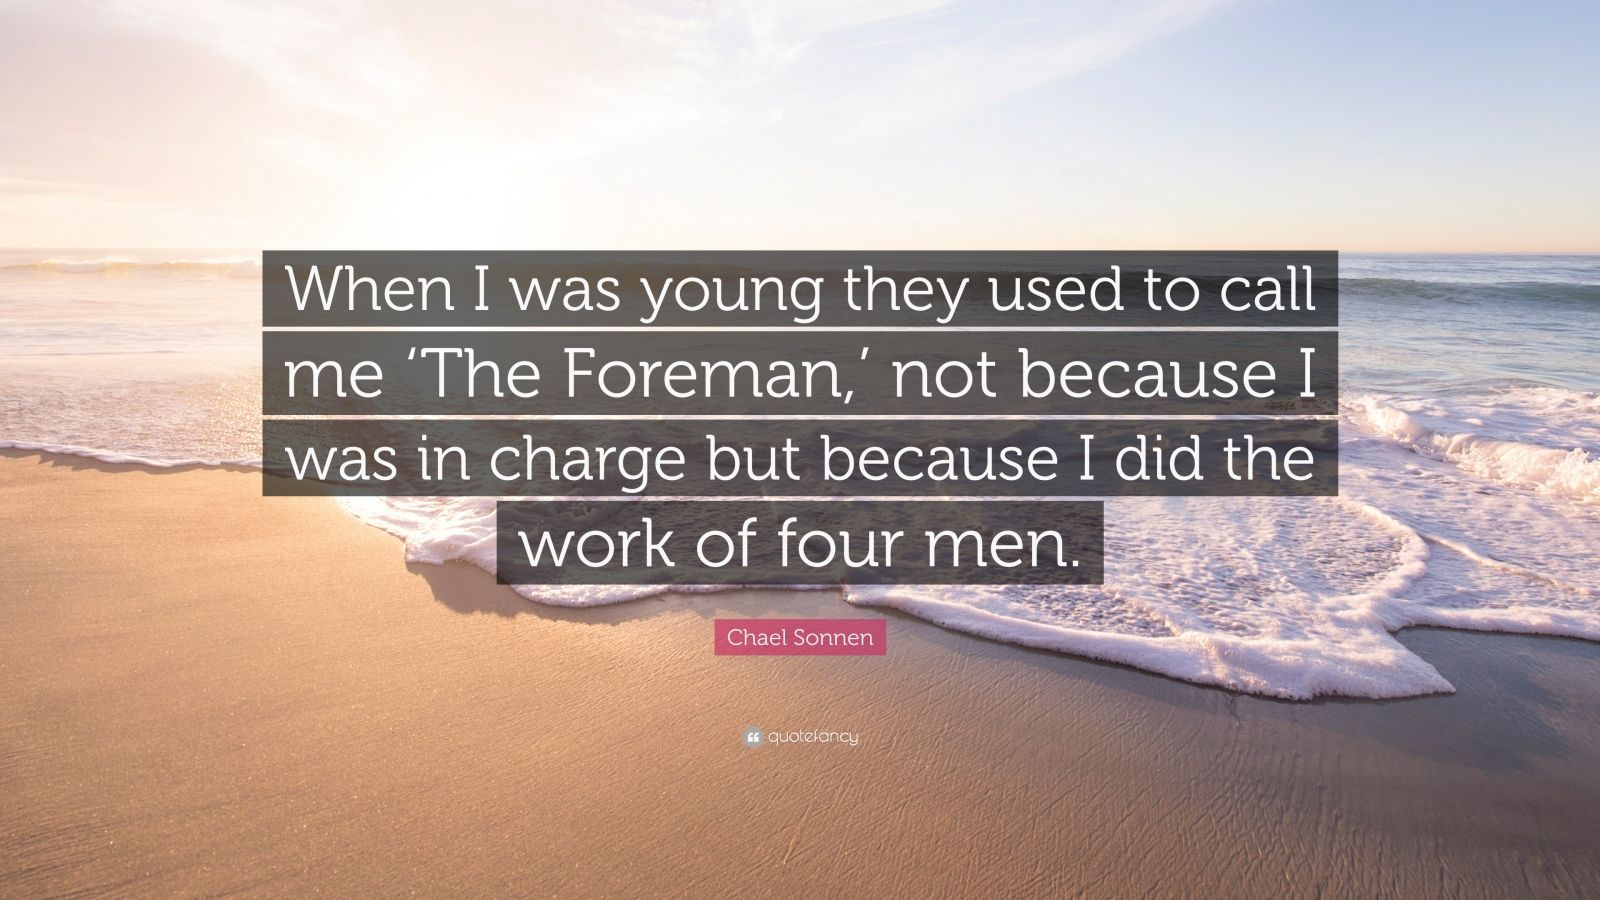 "Chael Sonnen Quote: ""When I was young they used to call me 'The Foreman,' not because I was in charge but because I did the work of four men."""